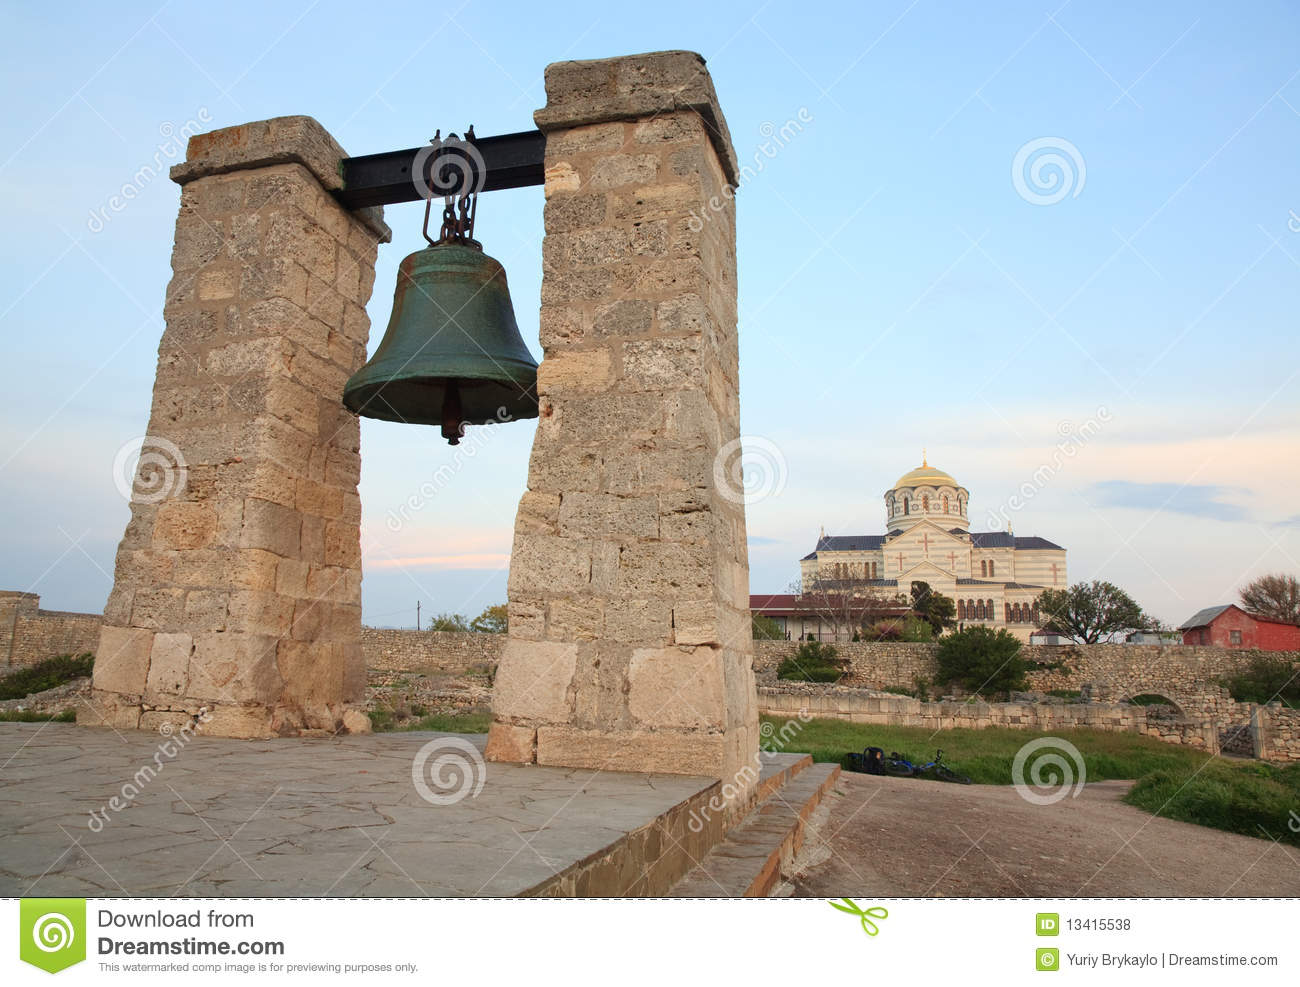 Evening the ancient bell of Chersonesos